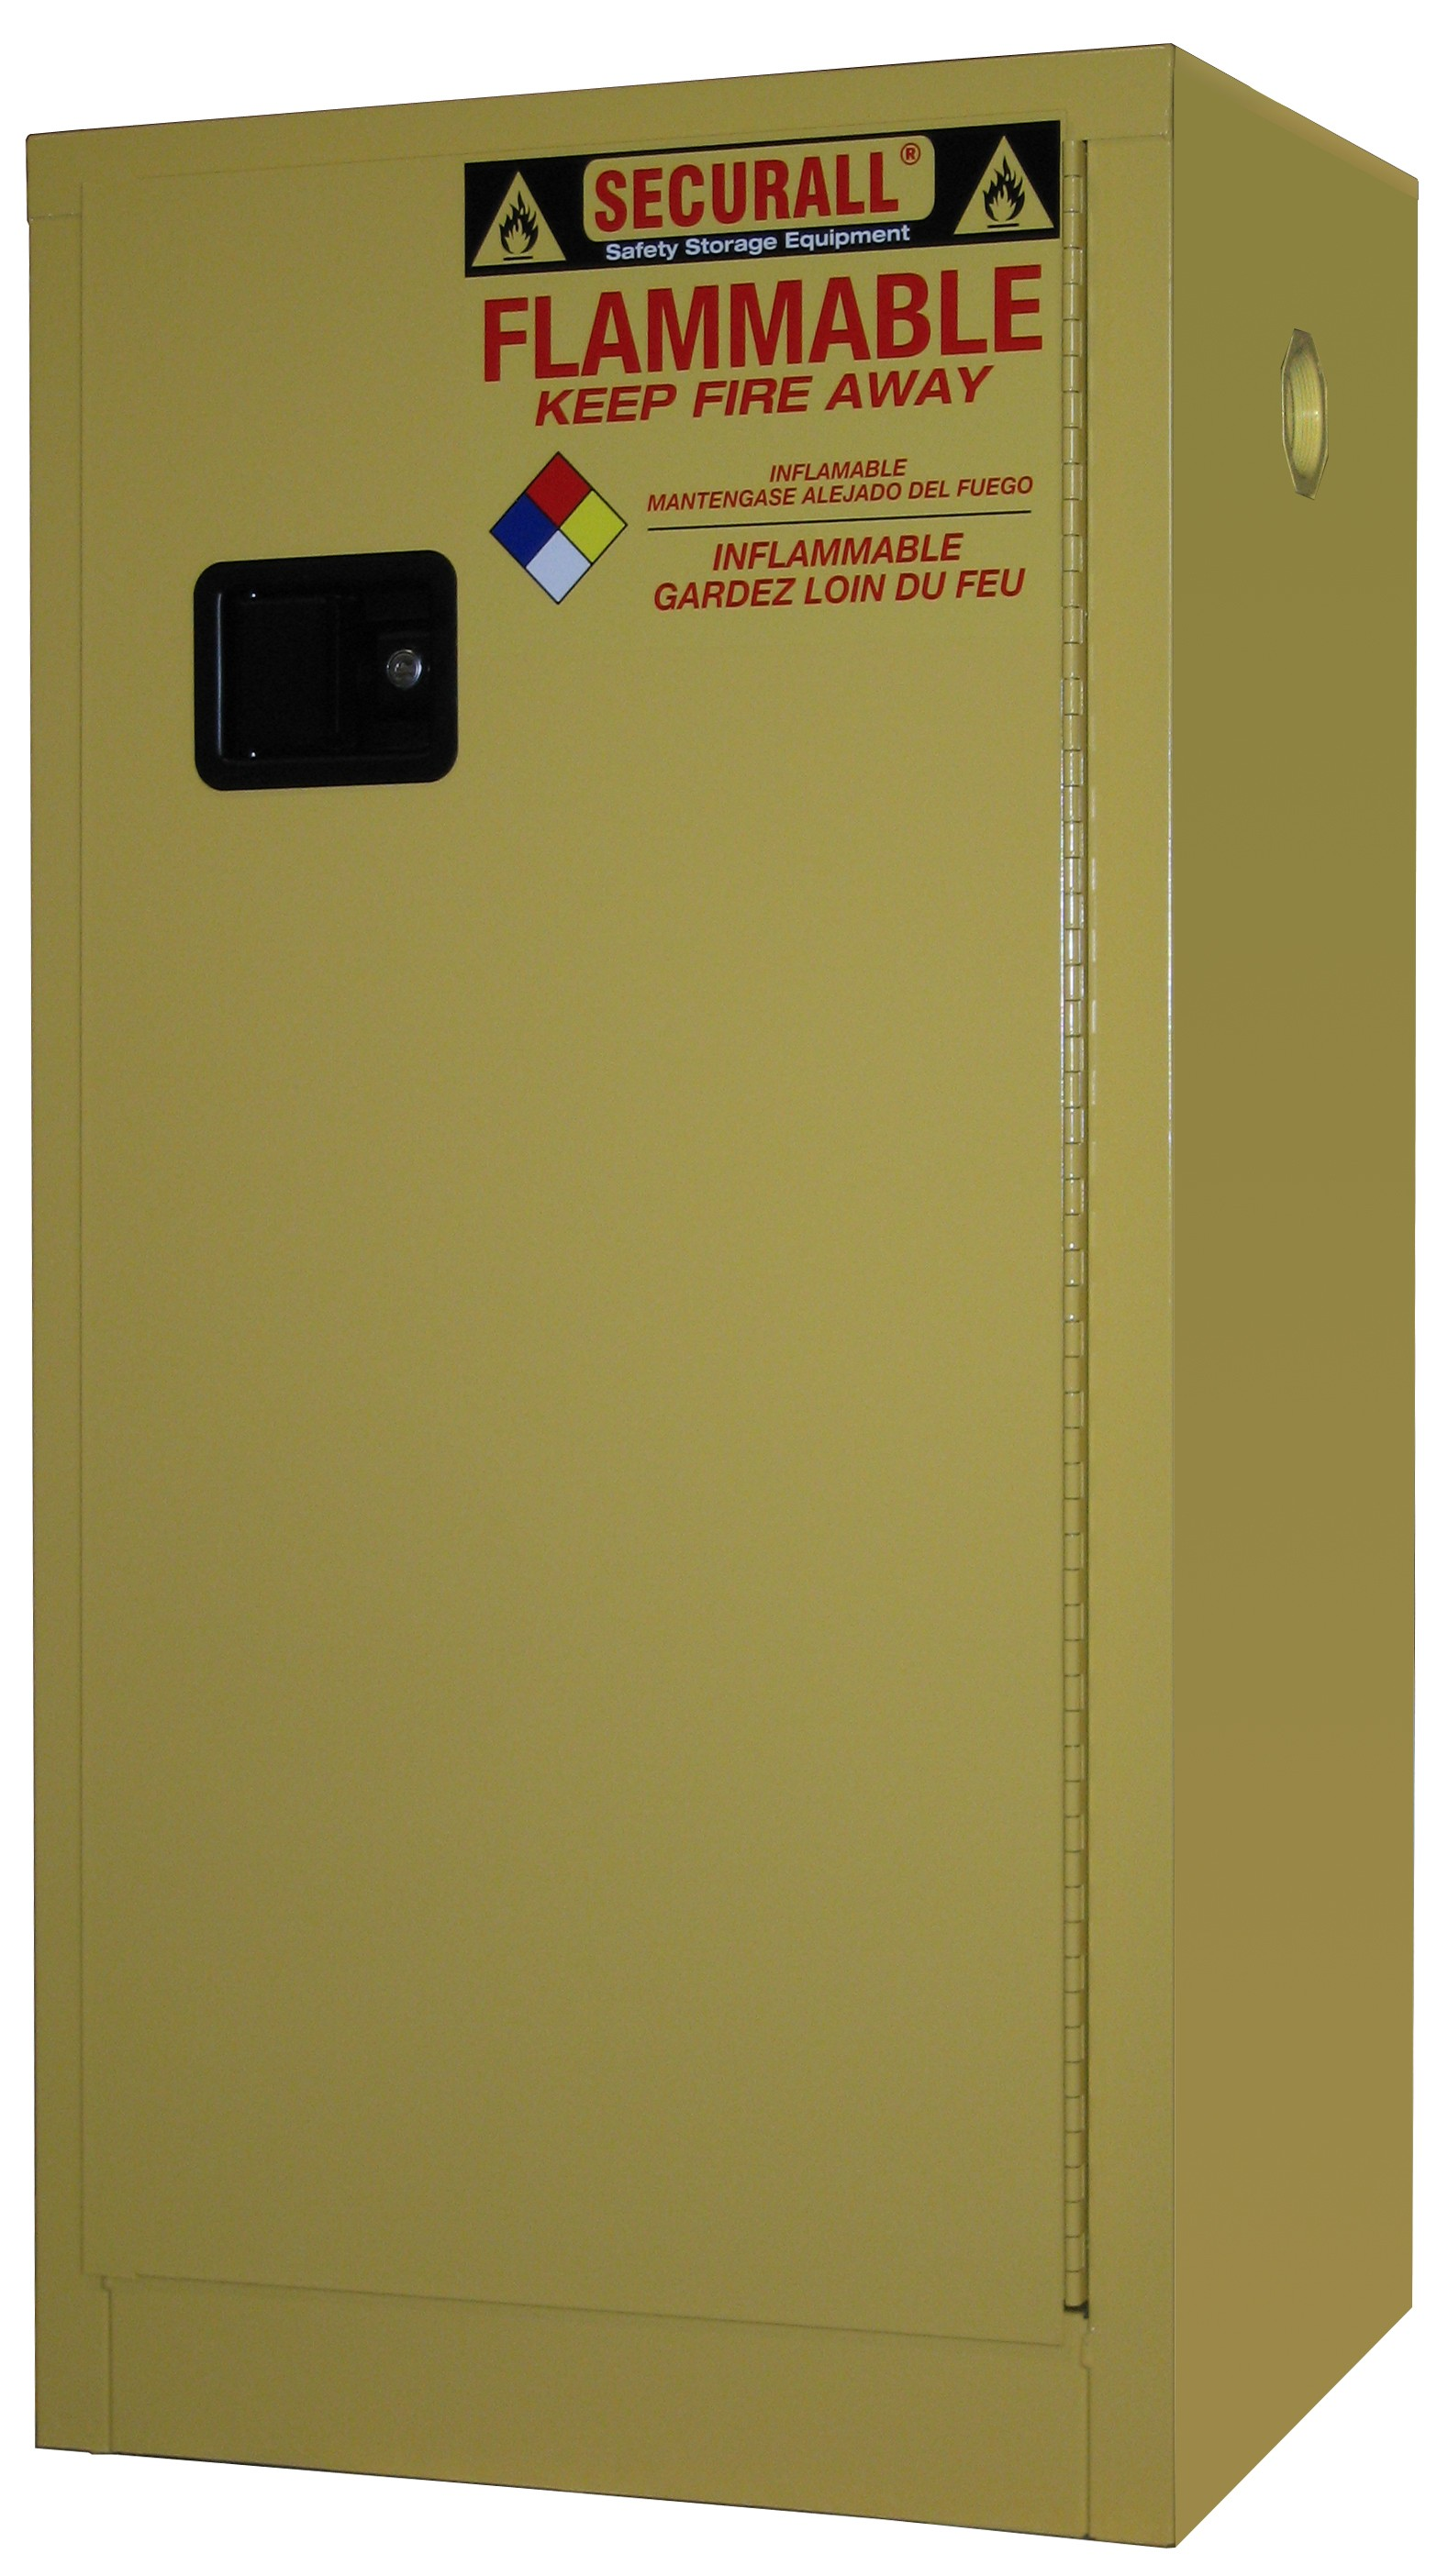 A110 - 16 Gal. capacity Flammable Storage Cabinet